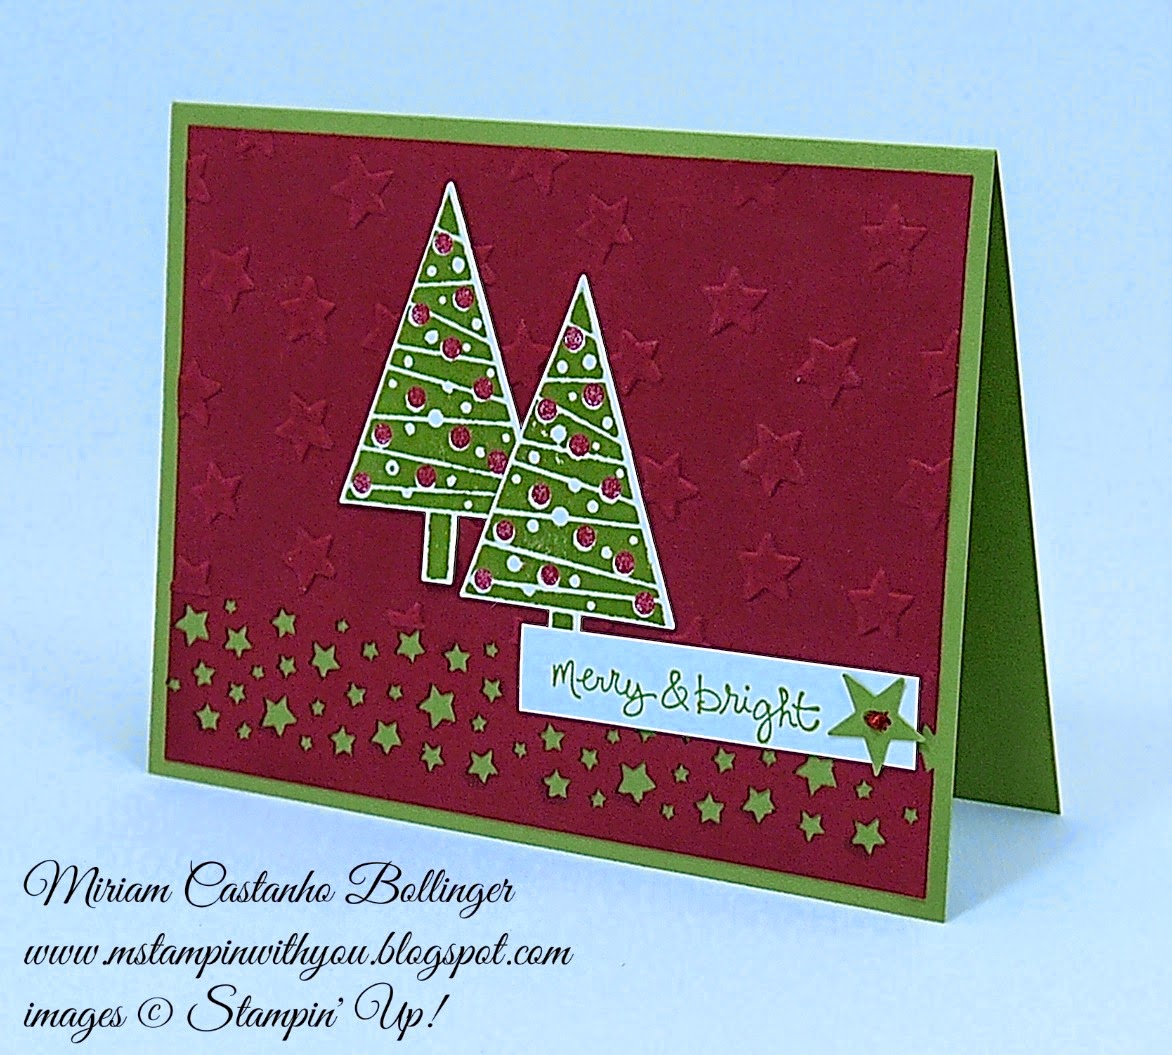 pp 210, Miriam Castanho Bollinger, #mstampinwithyou, stampin up, demonstrator, pp, festival of trees stamp set, good greetings stamp set, tree punch, confetti stars punch, itty bitty accents punch, lucky stars tief, heat embossing, su